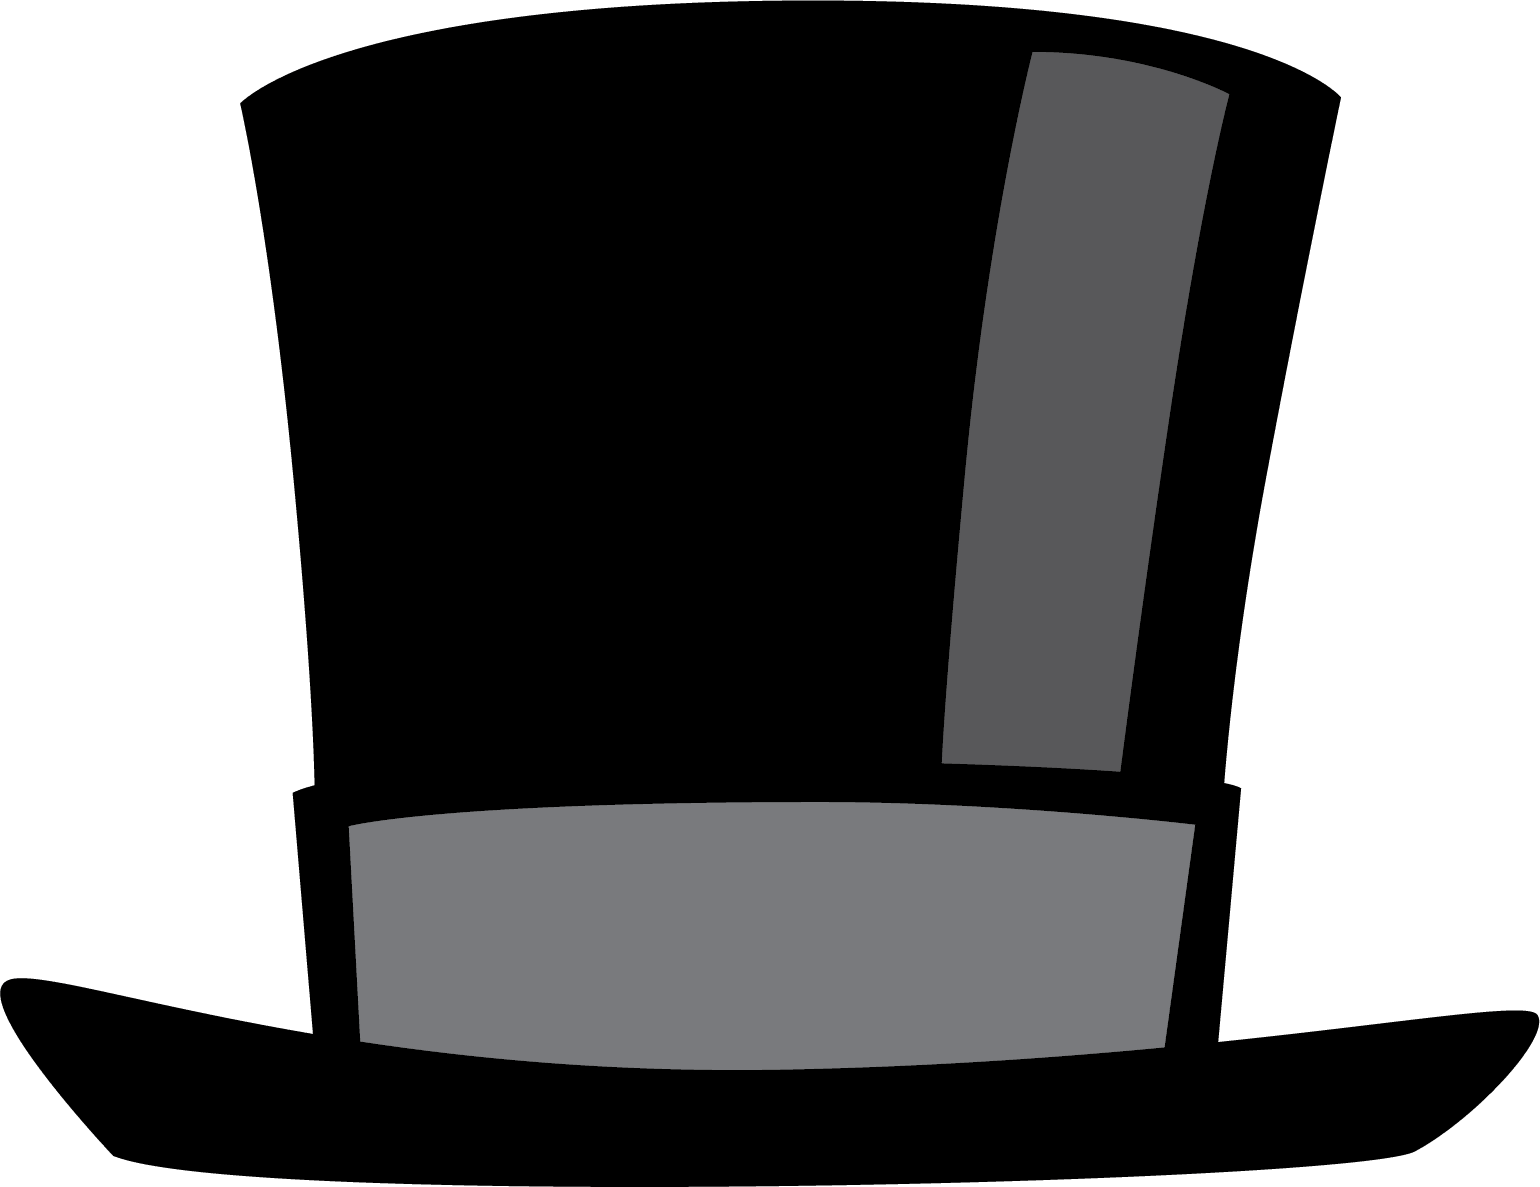 clip art funny hat - photo #23